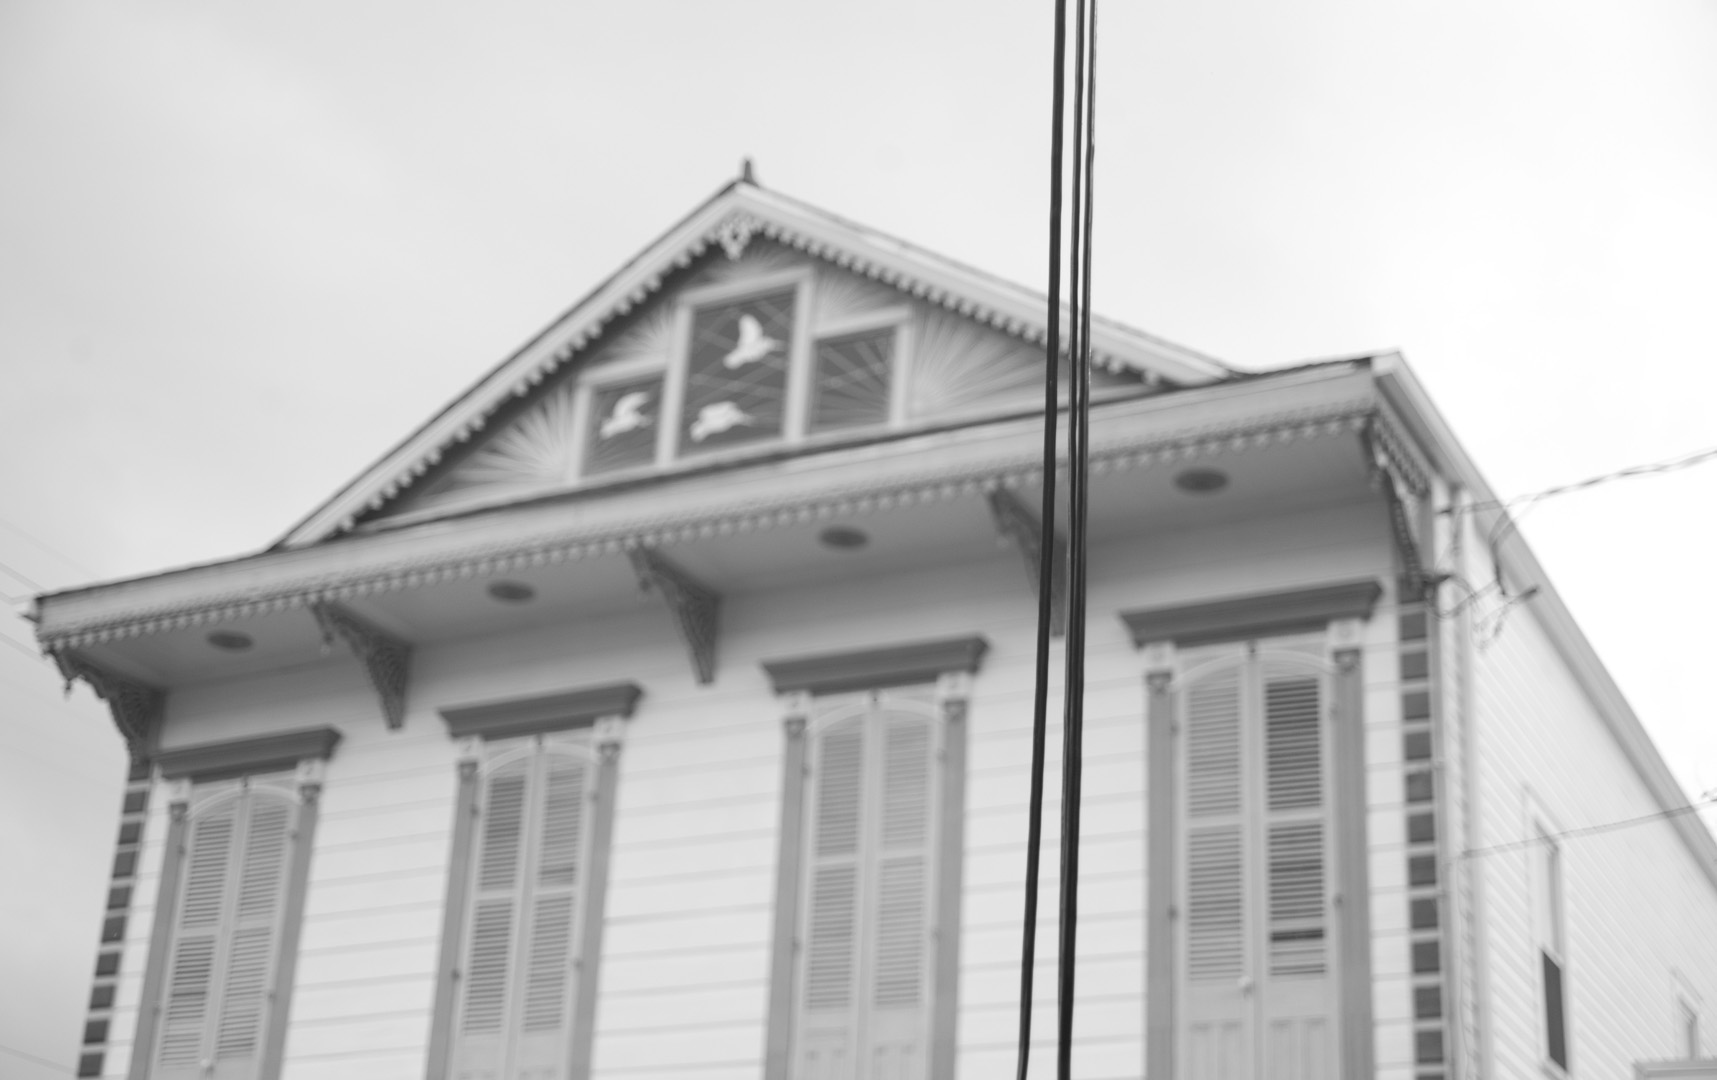 house new orleans correct size.jpg